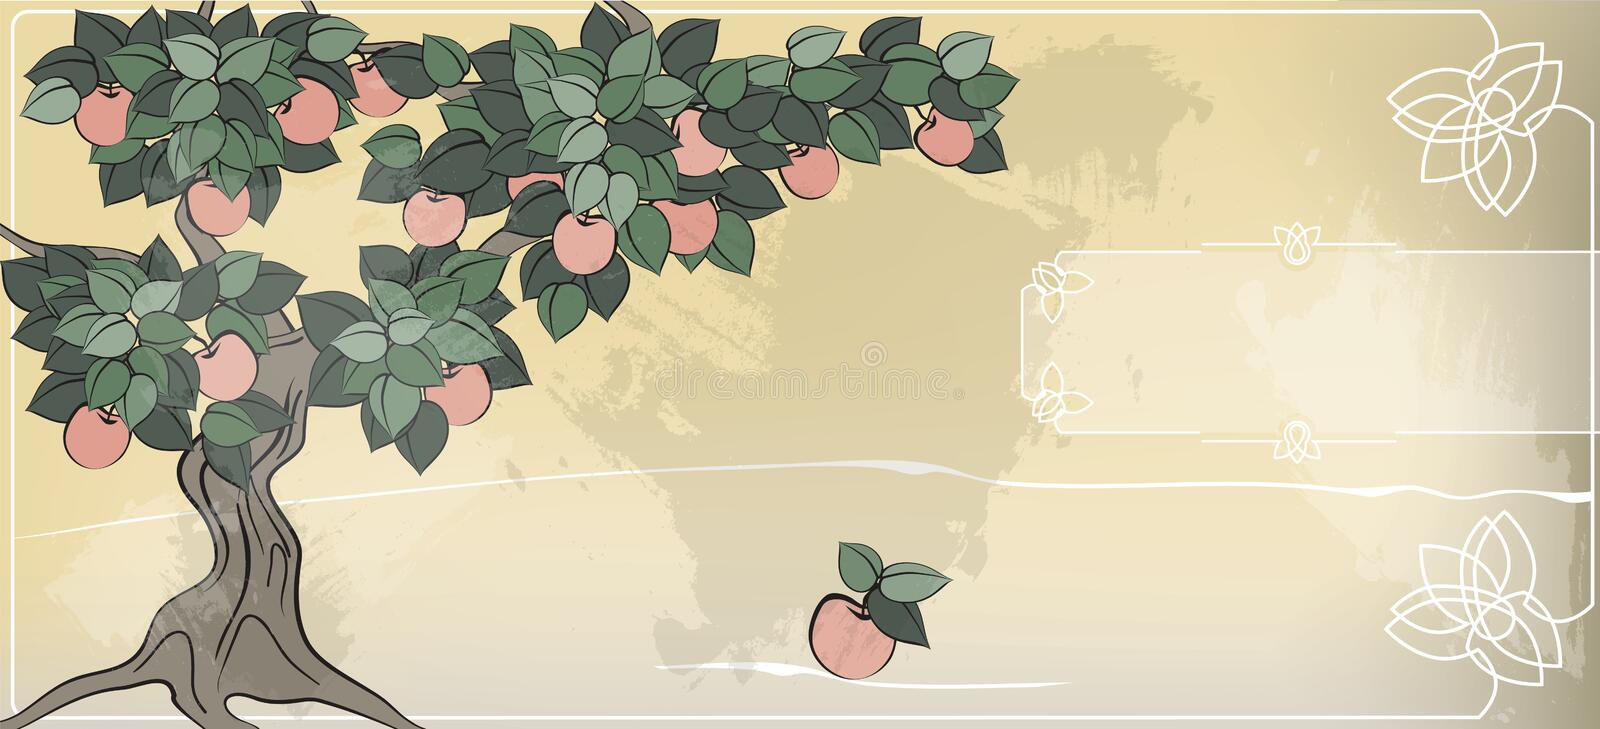 Download The Apple Does Not Fall Far From The Tree Stock Illustration - Illustration: 24275266